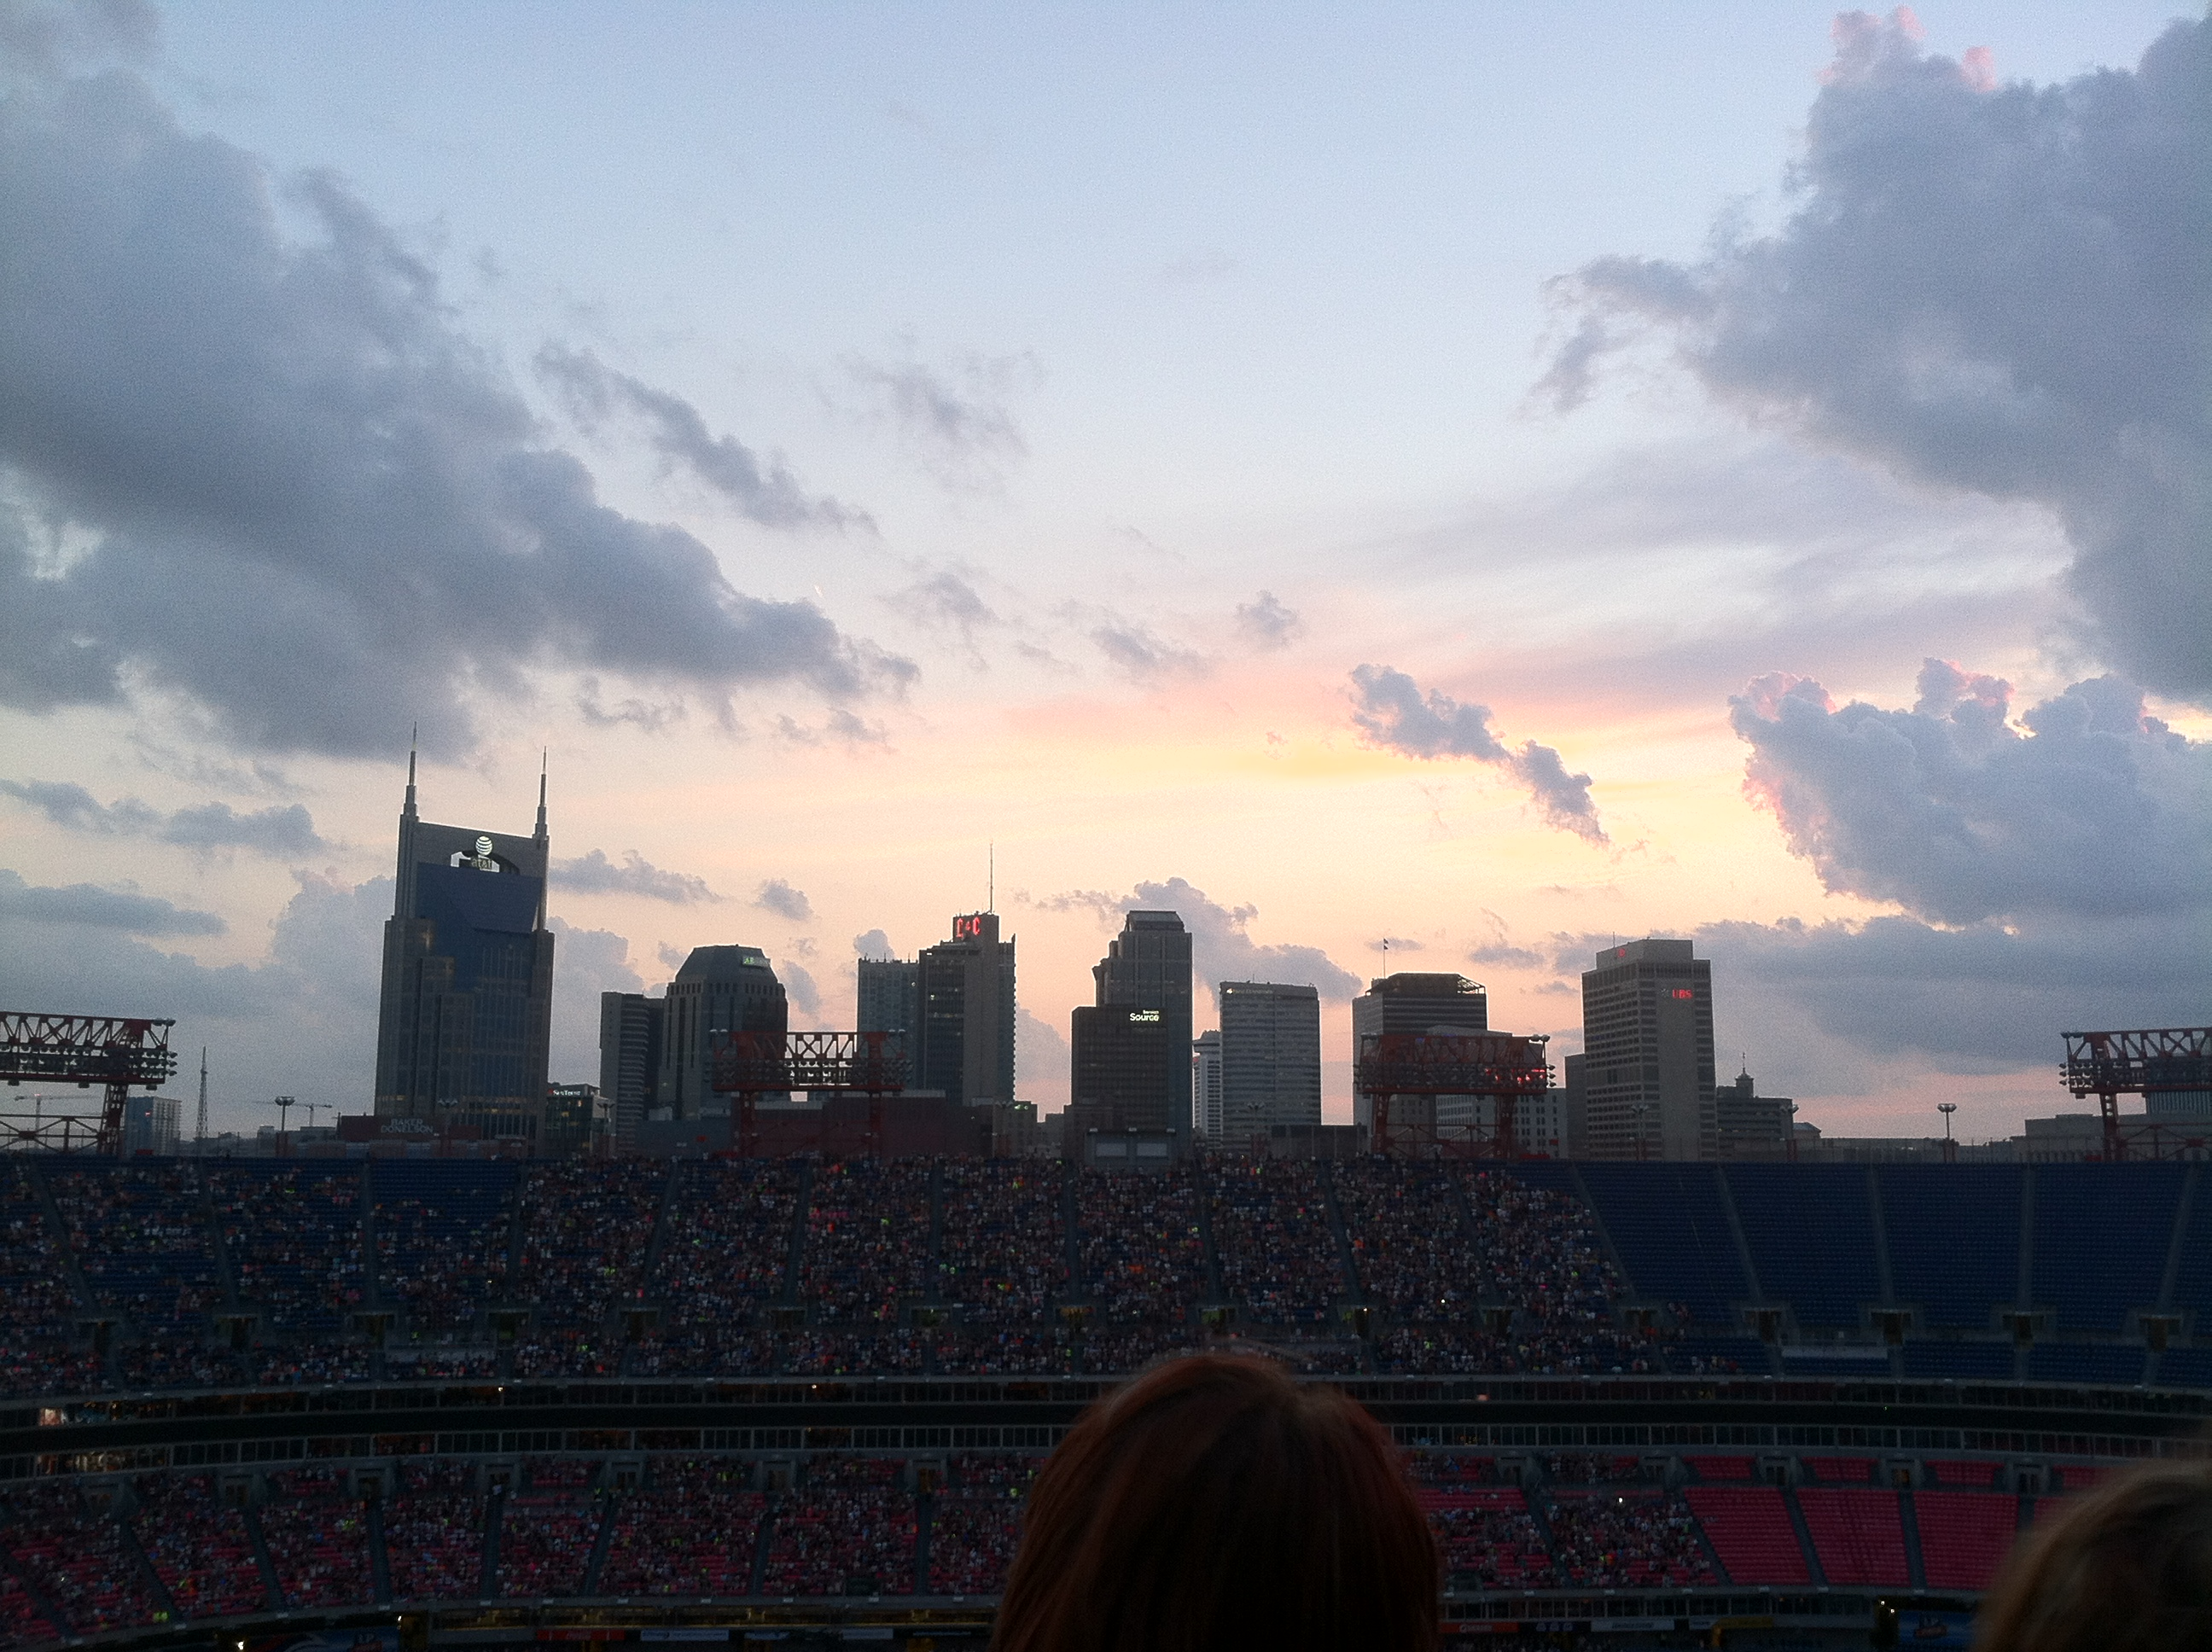 LP Field to Nissan Stadium